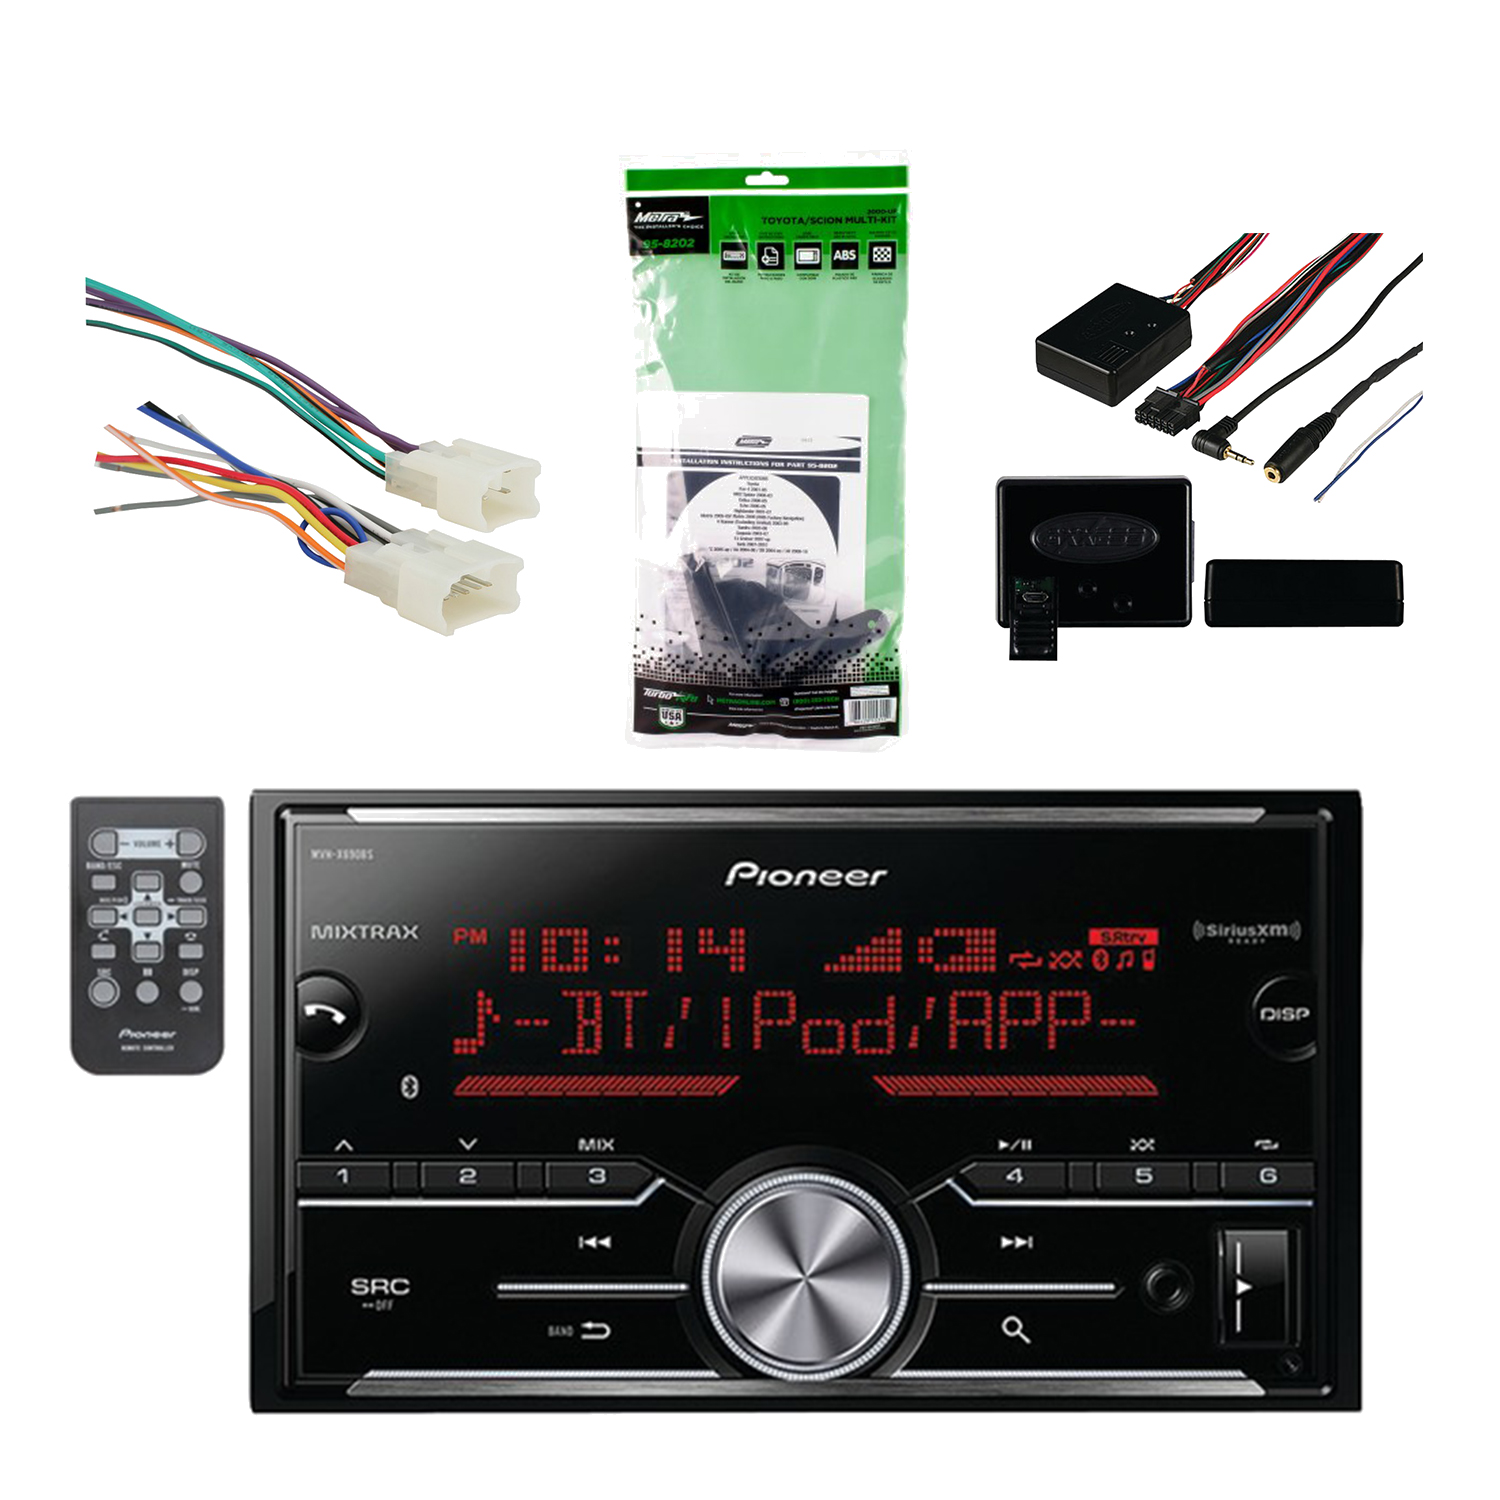 Pioneer Vehicle Digital Media 2DIN Receiver with Bluetooth Enhanced Audio Functions, Black with Metra DDIN Multi Dash Kit, Metra Radio Wiring harness & Metra Universal Steering Wheel Control Interface